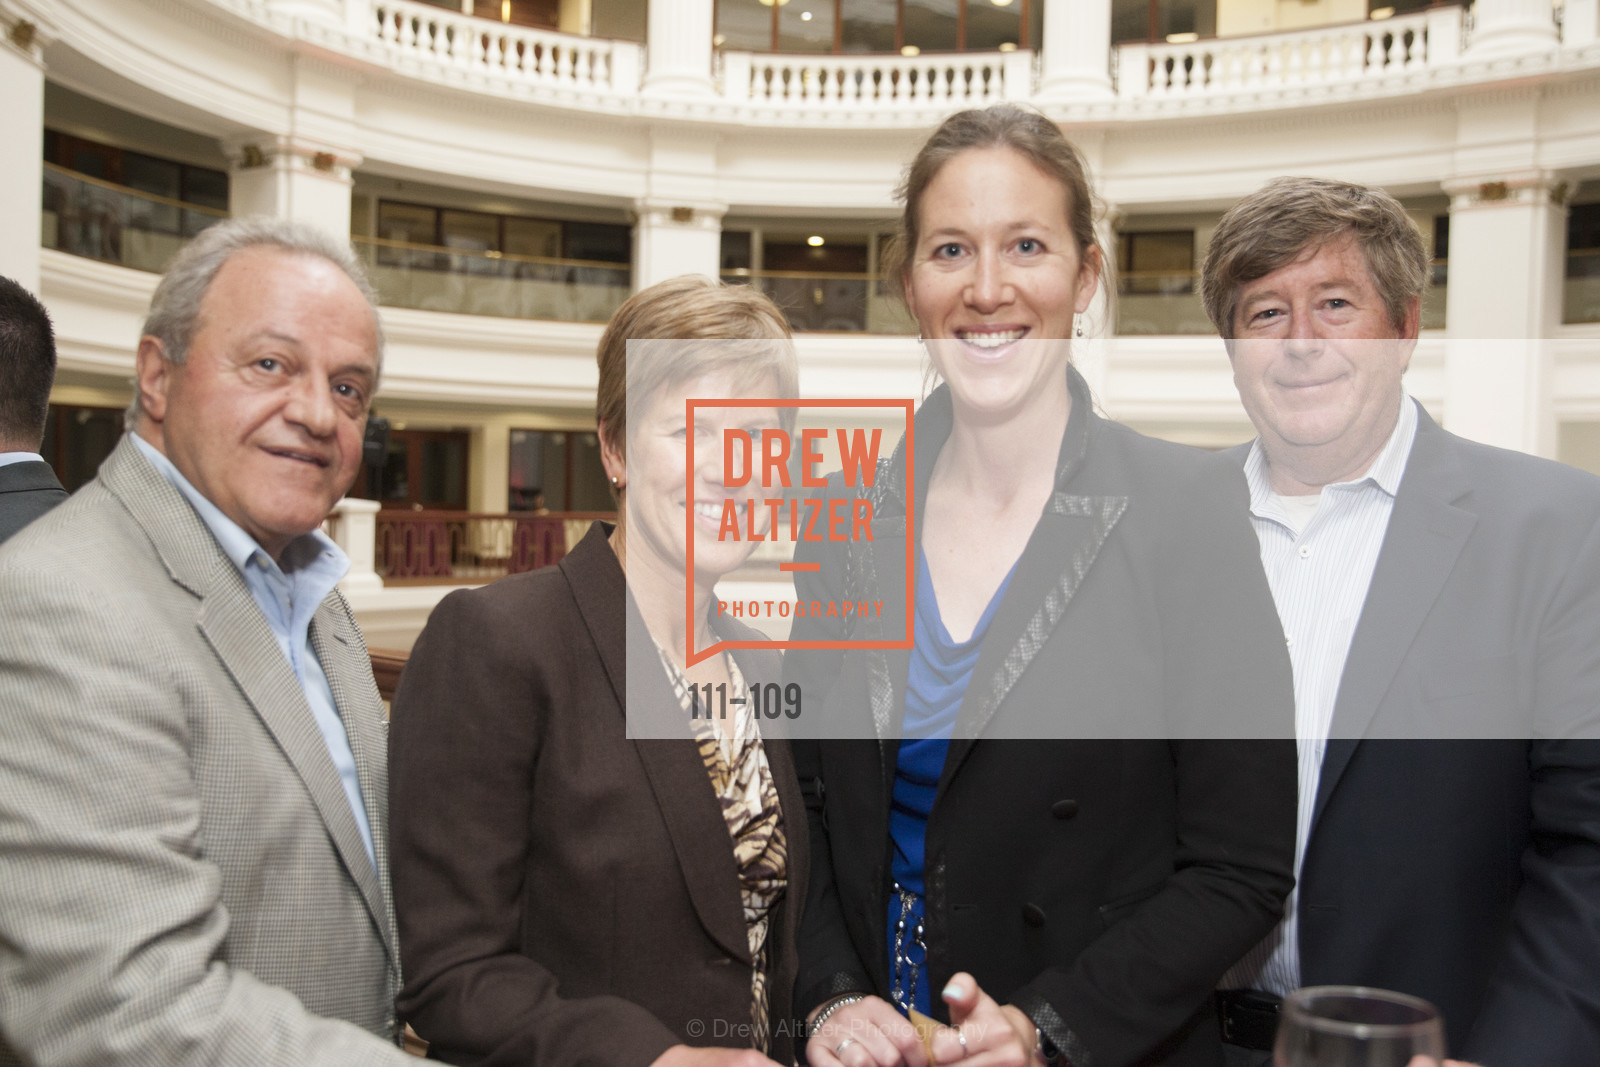 John Knetta, Shelly Taylor, Stacy Kowalczyk, Scott Taylor, PANGAEA GLOBAL HEALTH Leadership Dinner at Rotunda in Oakland, The Rotunda. Oakland, May 11th, 2015,Drew Altizer, Drew Altizer Photography, full-service agency, private events, San Francisco photographer, photographer california